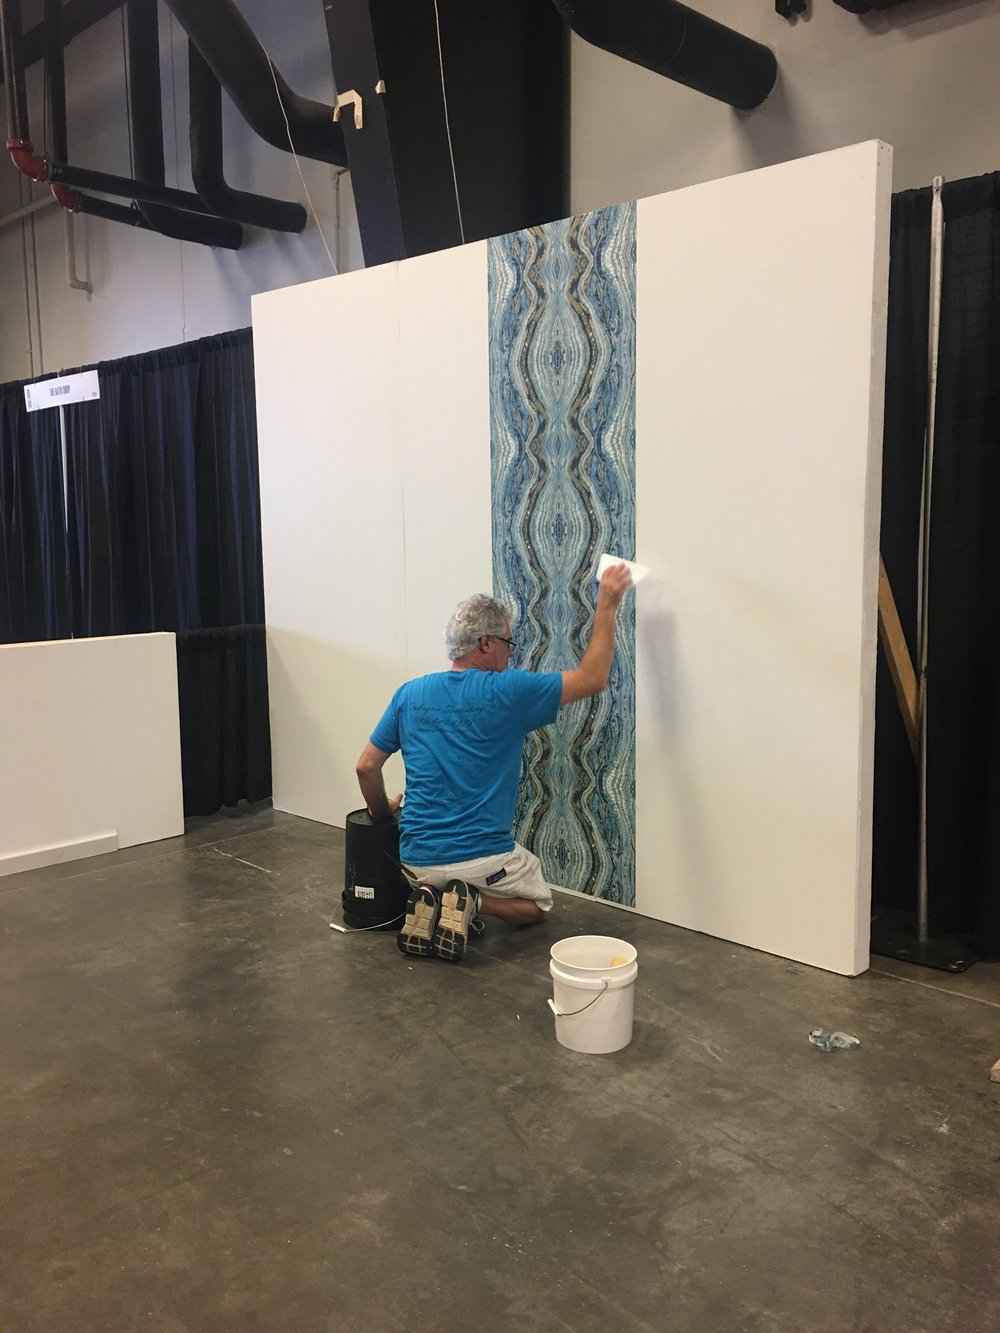 We had wall built to surround our booth and had this amazing  Eykon  wallpaper installed. It made such a bold statement & the installation was complete in about an hour!